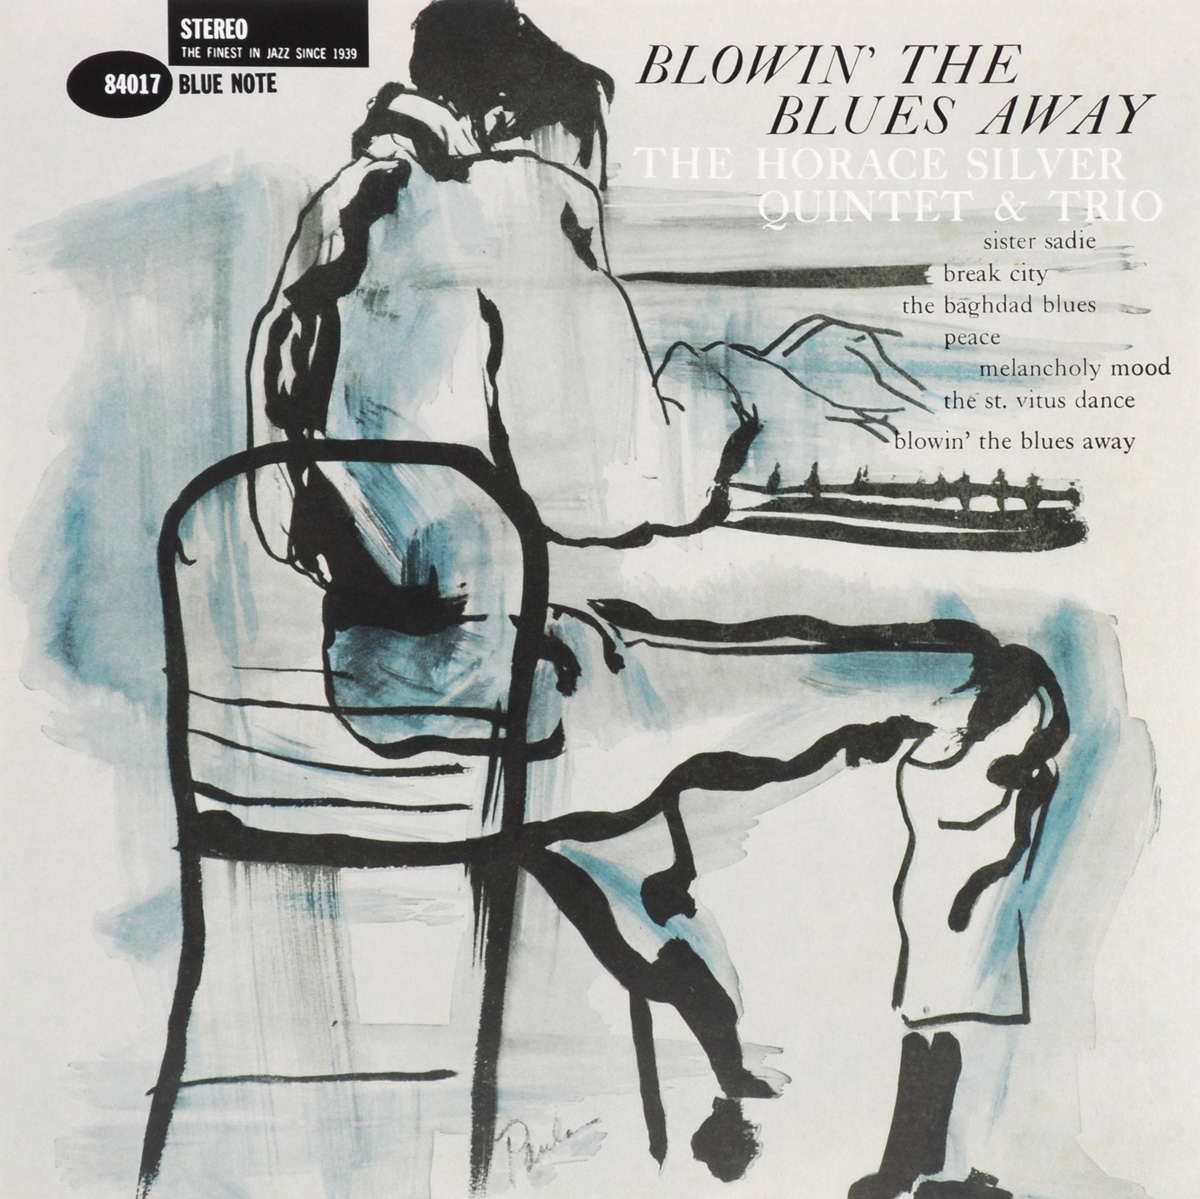 The Horace Silver Quintet Horace Silver Quintet & Trio. Blowin' The Blues Away (LP) the chico hamilton quintet the chico hamilton quintet gongs east